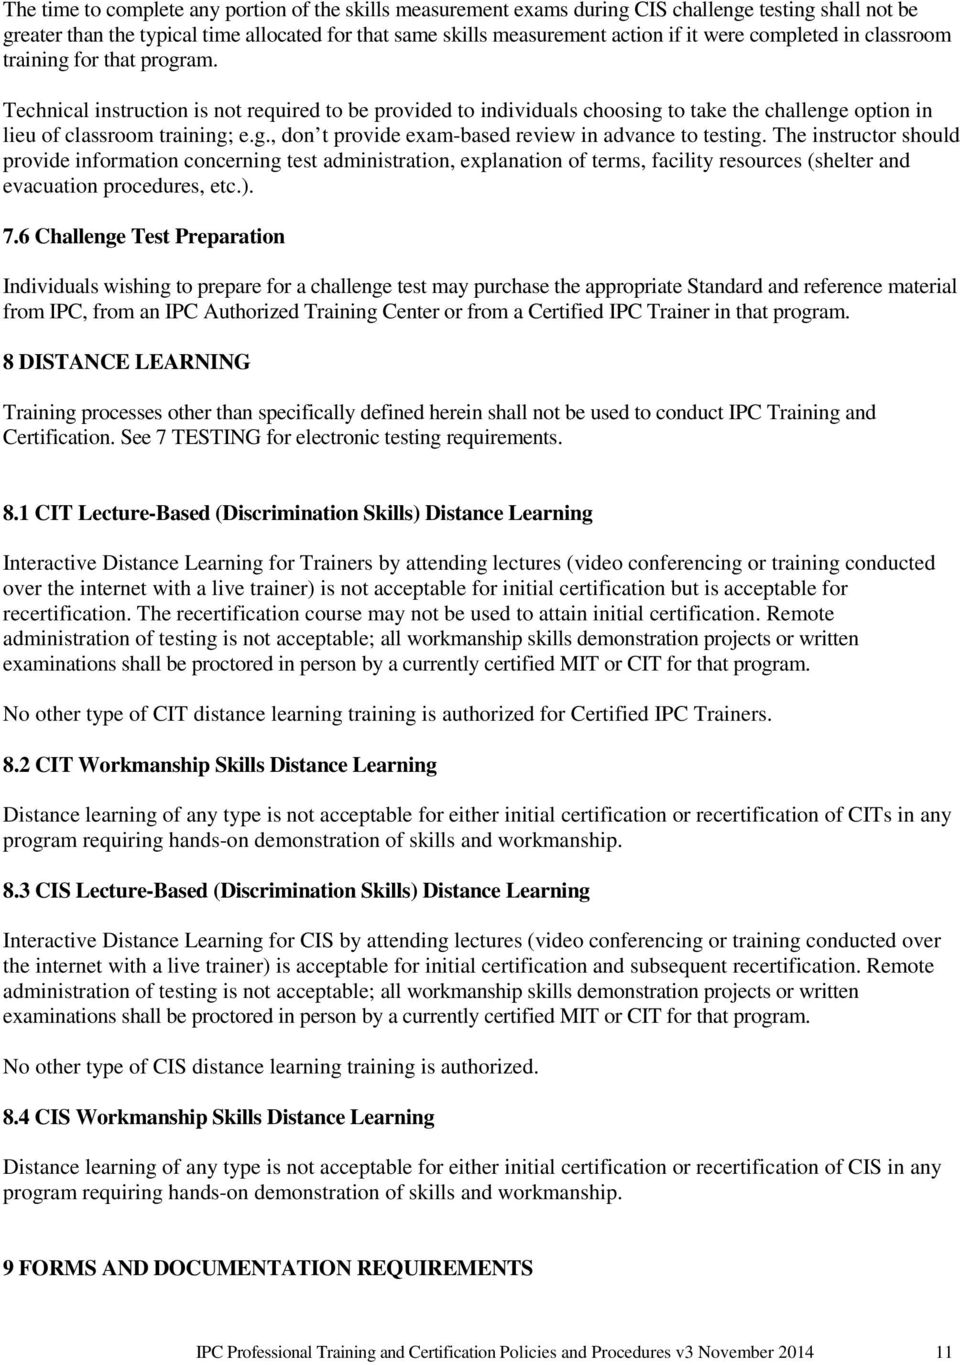 Ipc Professional Training And Certification Policies And Procedures